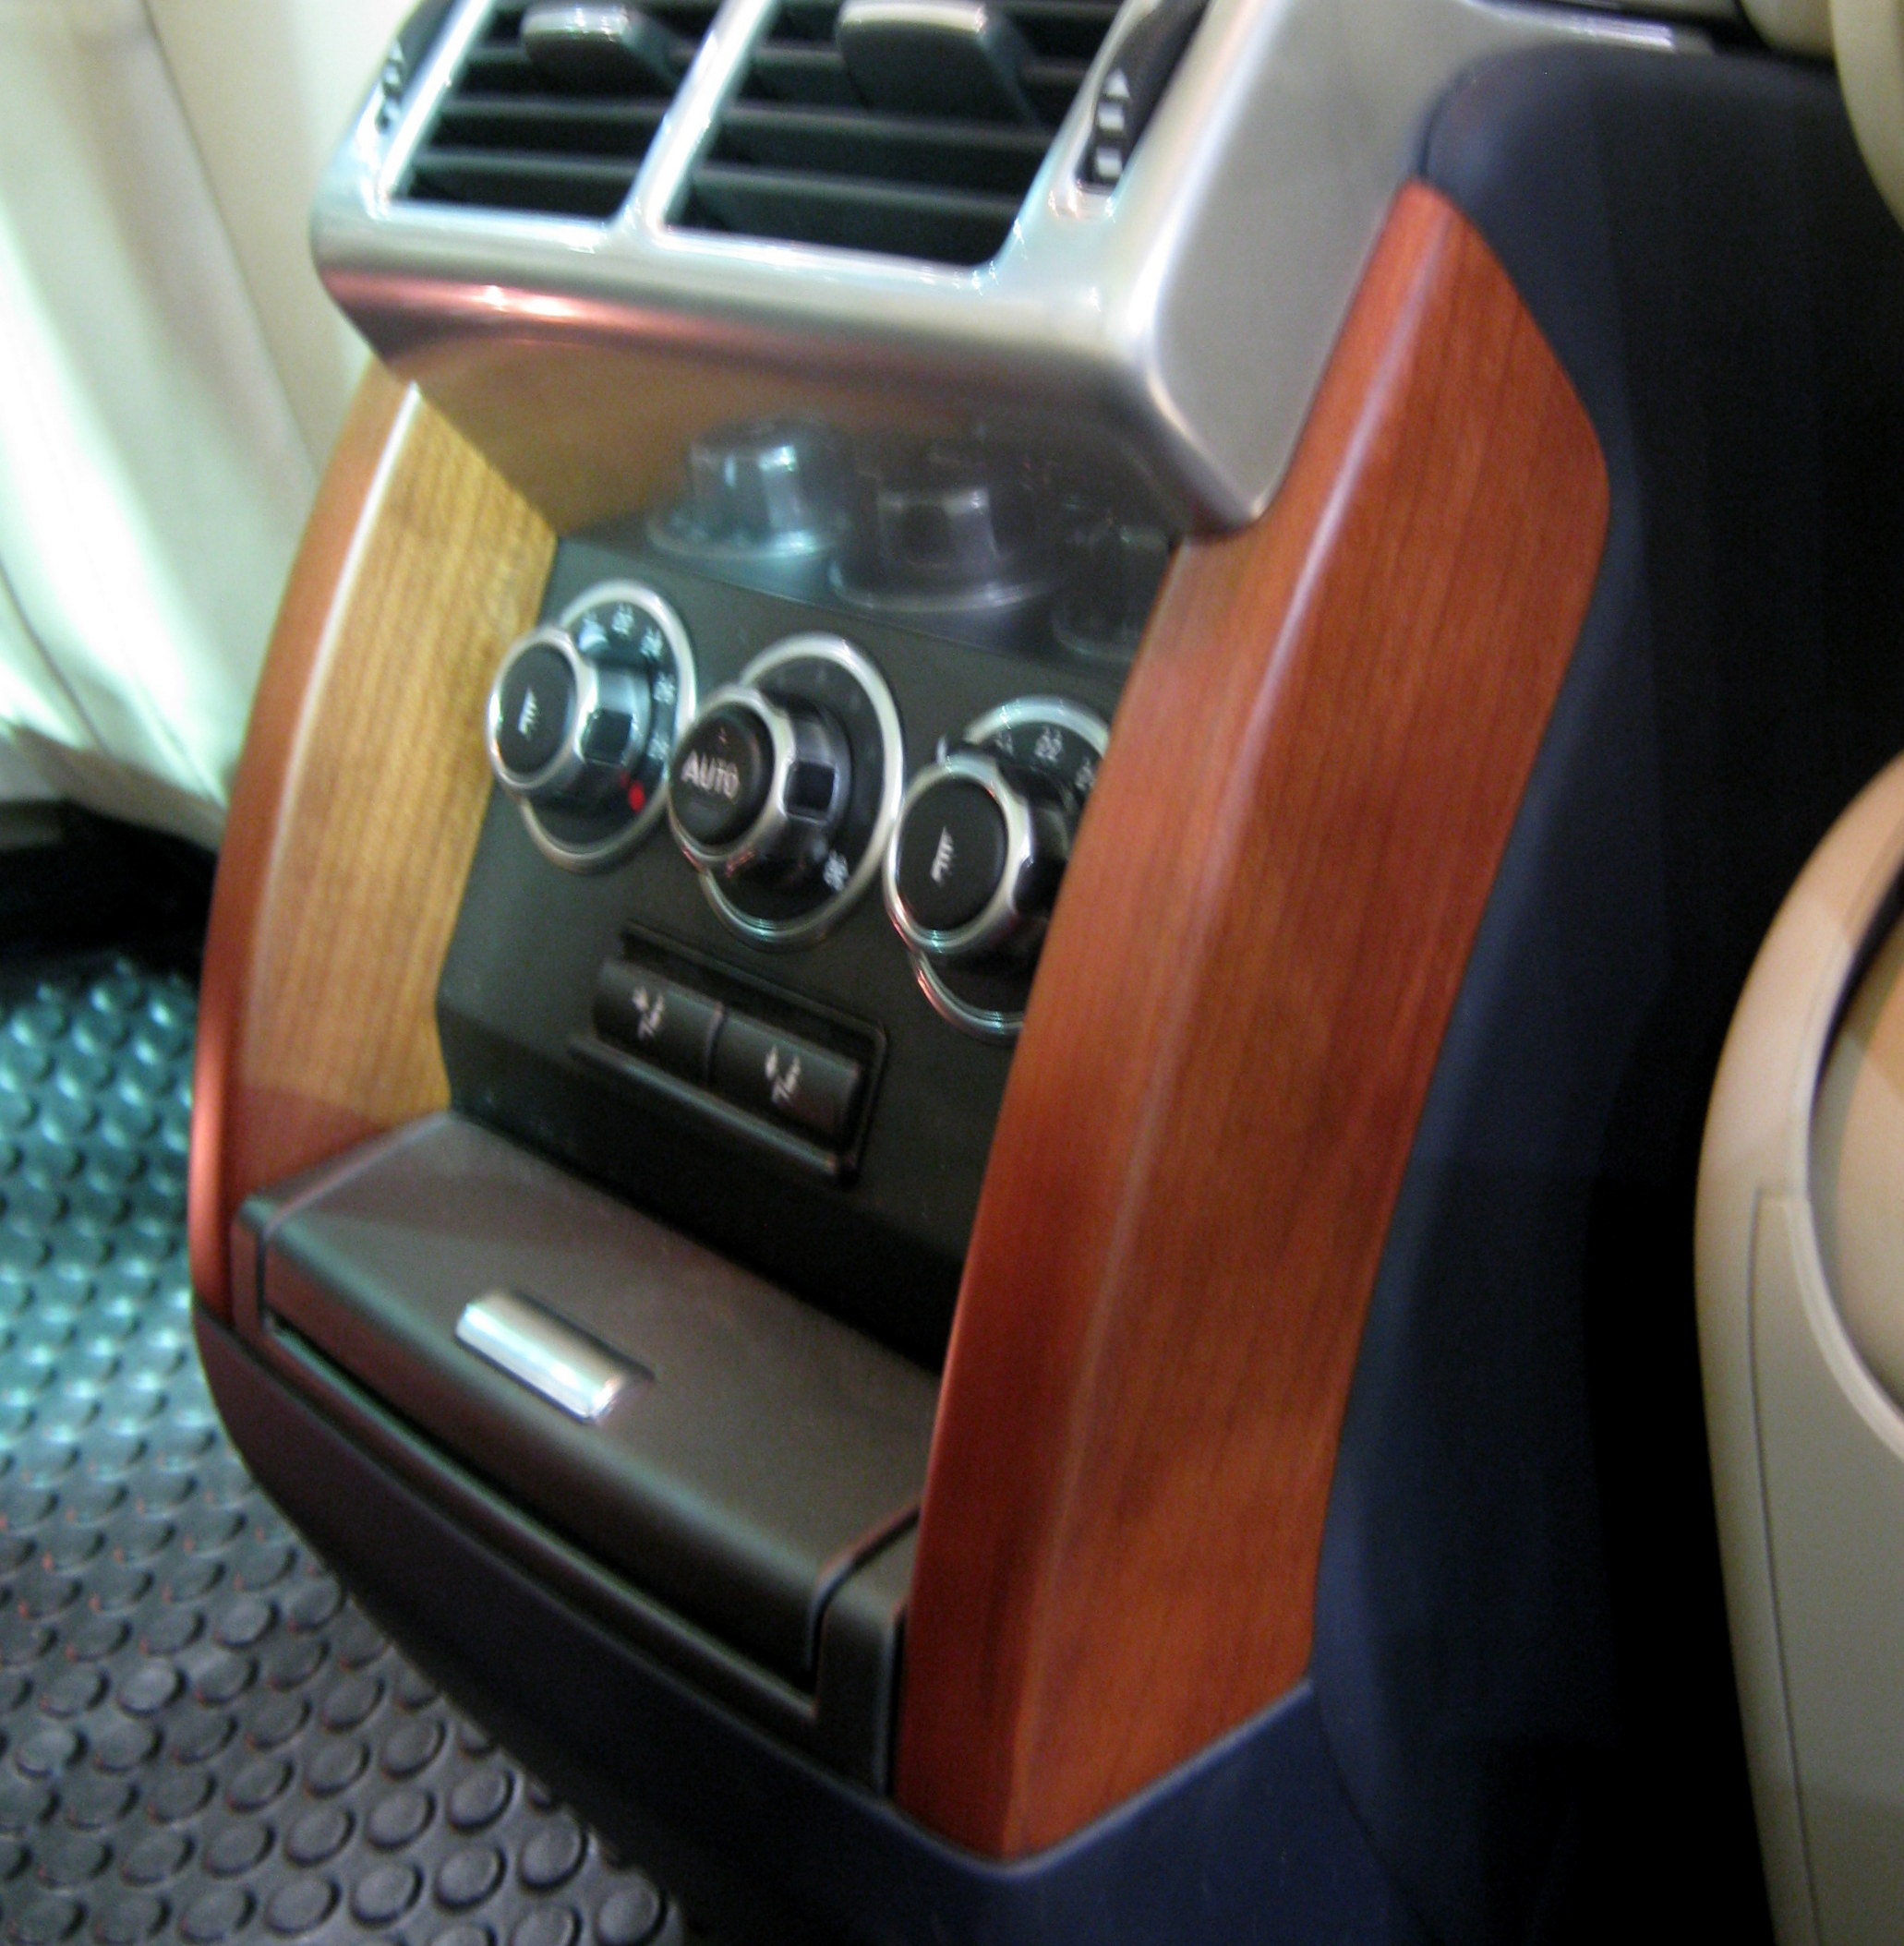 2002 Land Rover Range Rover Interior: Cherry Wood Rear Console Pillars For Range Rover L322 2006